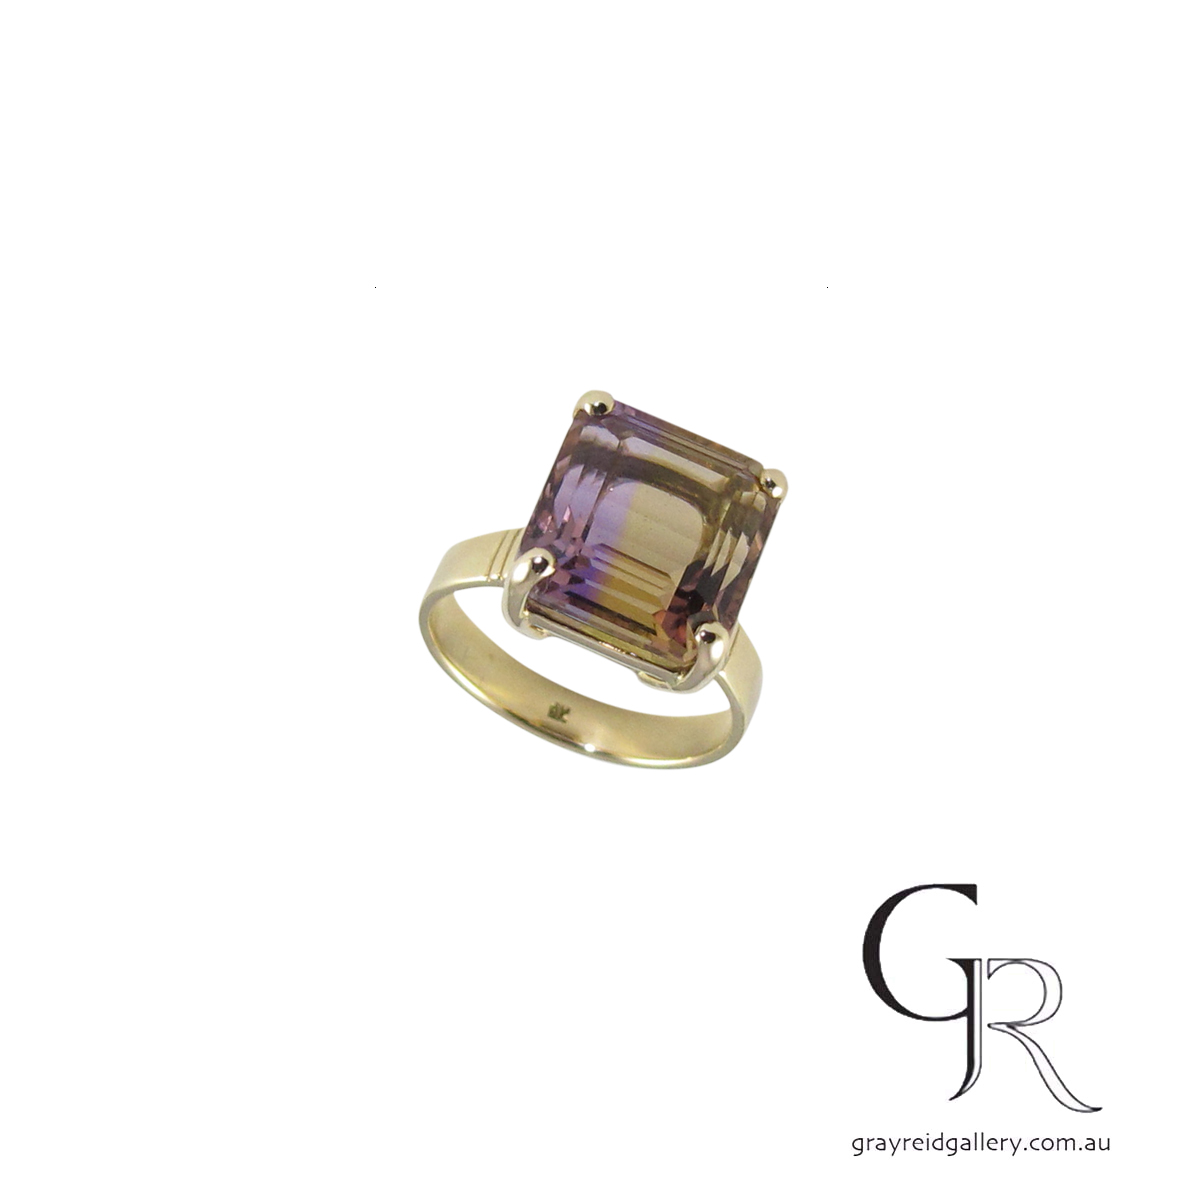 custom made 9ct gold amatrine ring gray reid gallery 6525 A $850.jpg